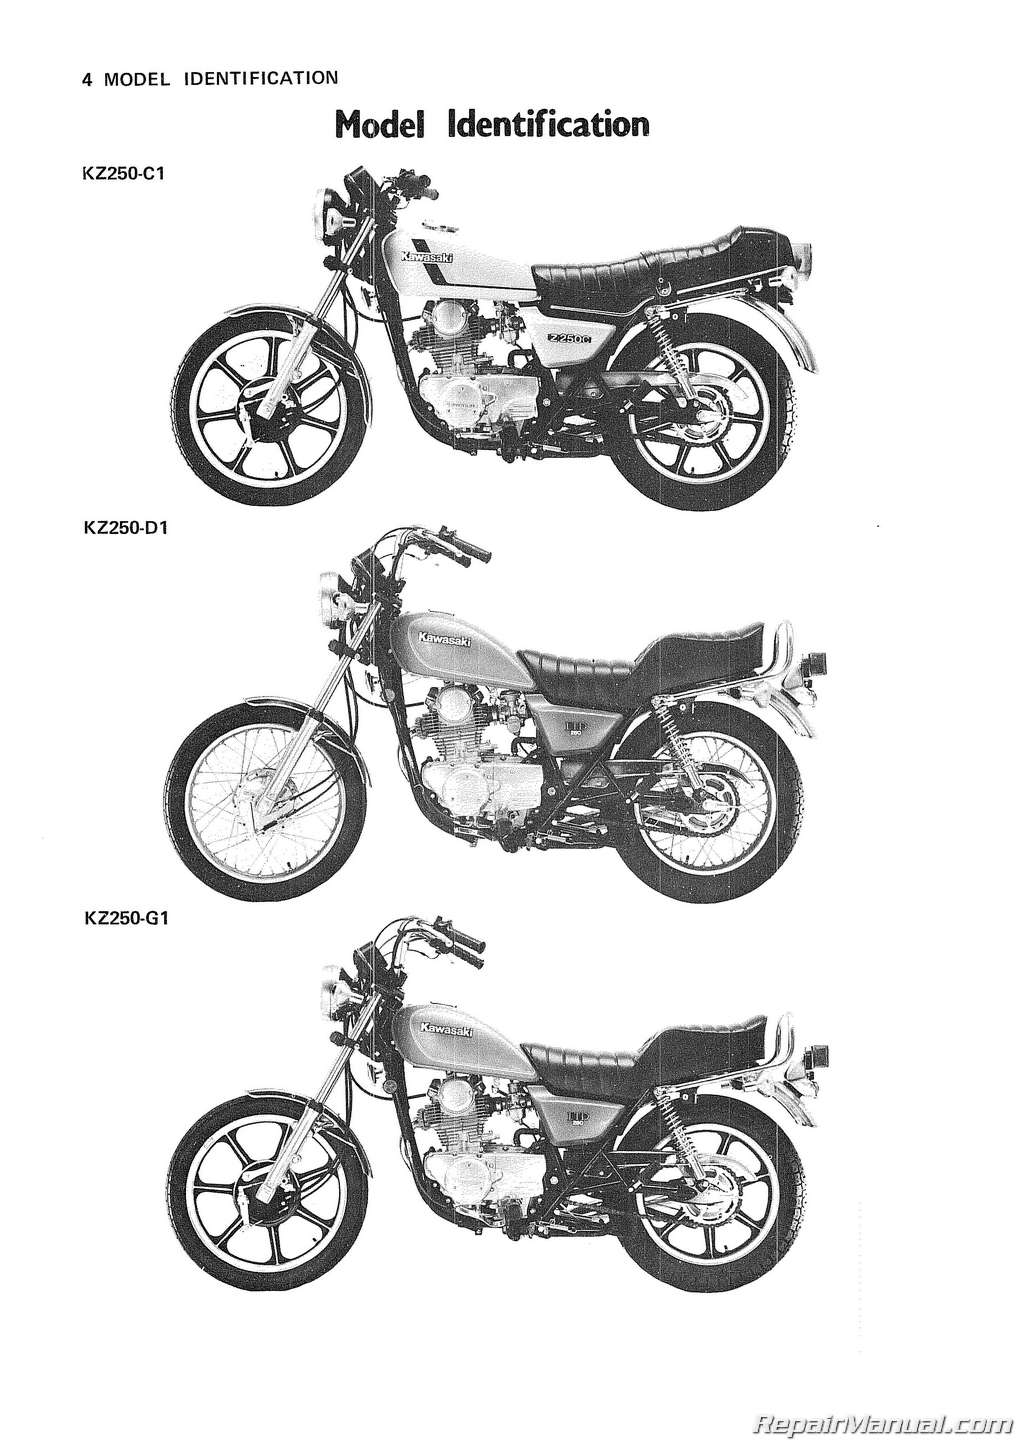 Kawasaki Kz250 Motorcycle Repair Service Manual